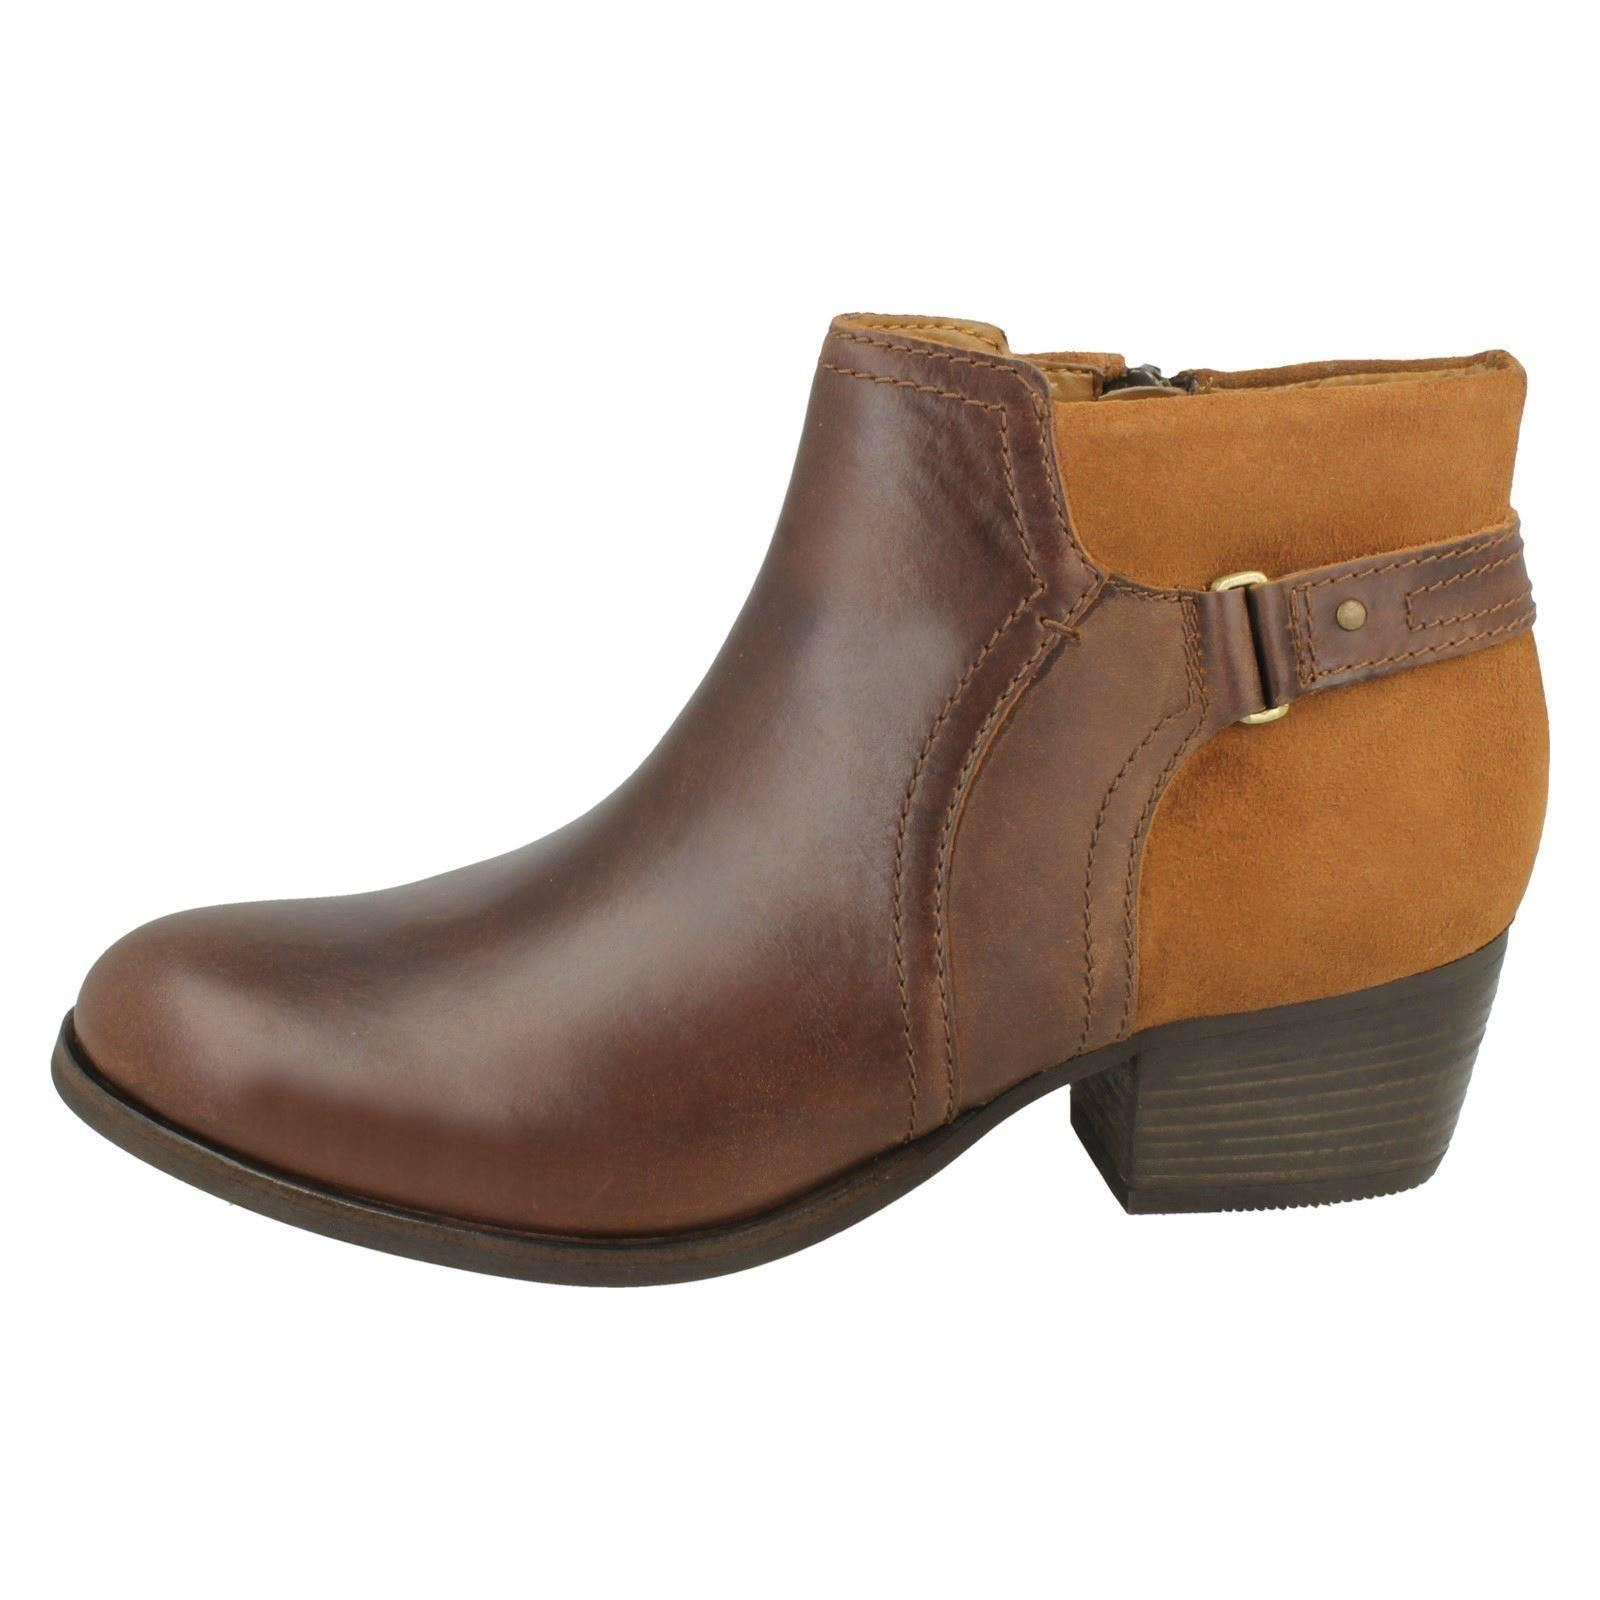 Ladies Clarks Casual Zip Up Leather Heeled Ankle Boots Maypearl Alice